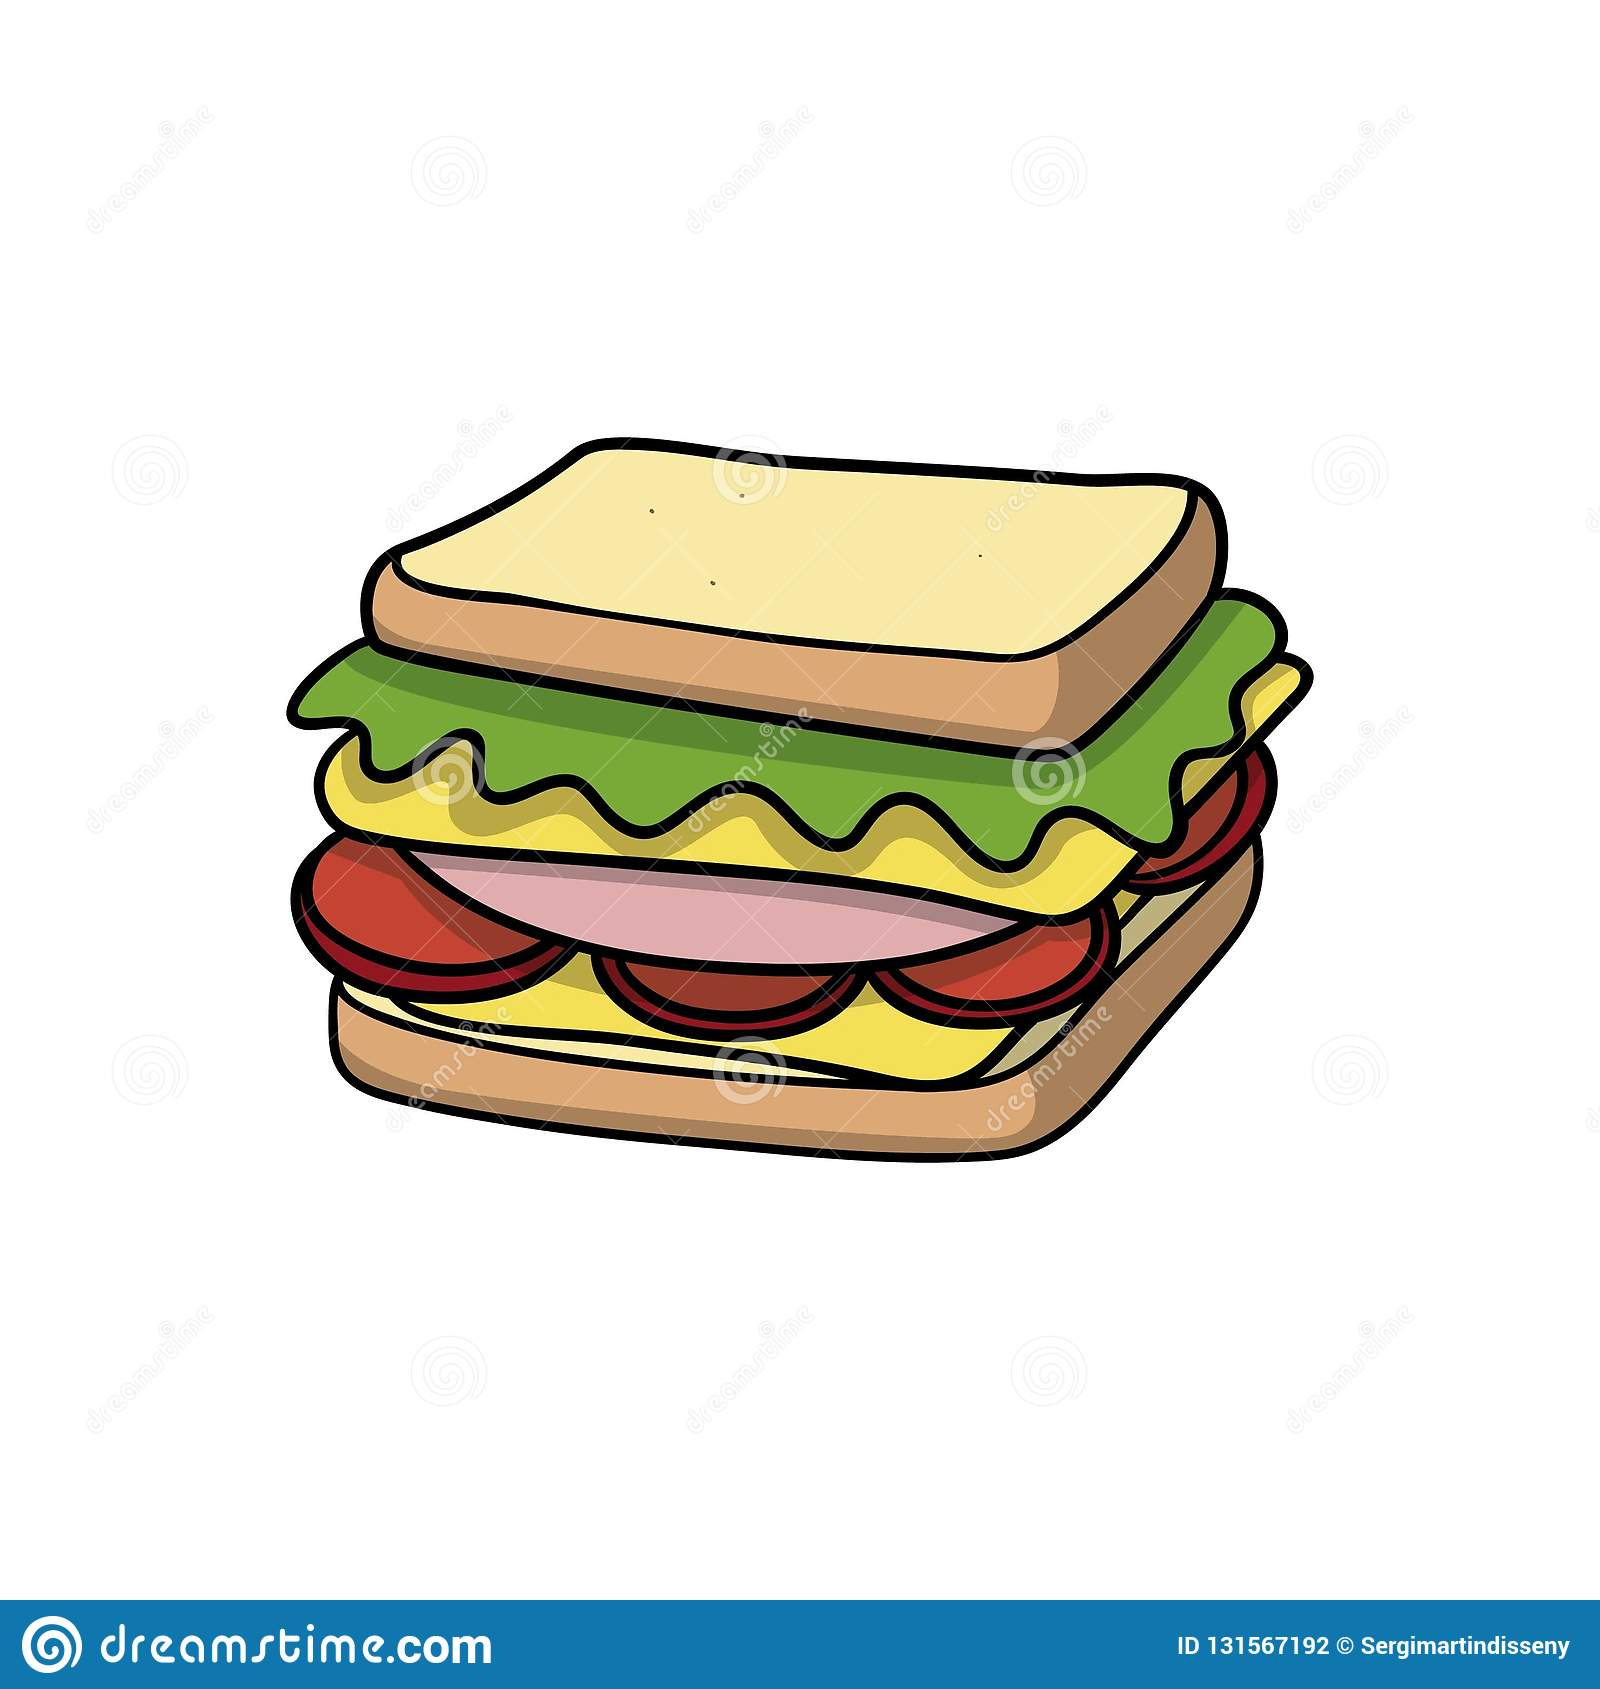 Get Sandwich Cartoon Images